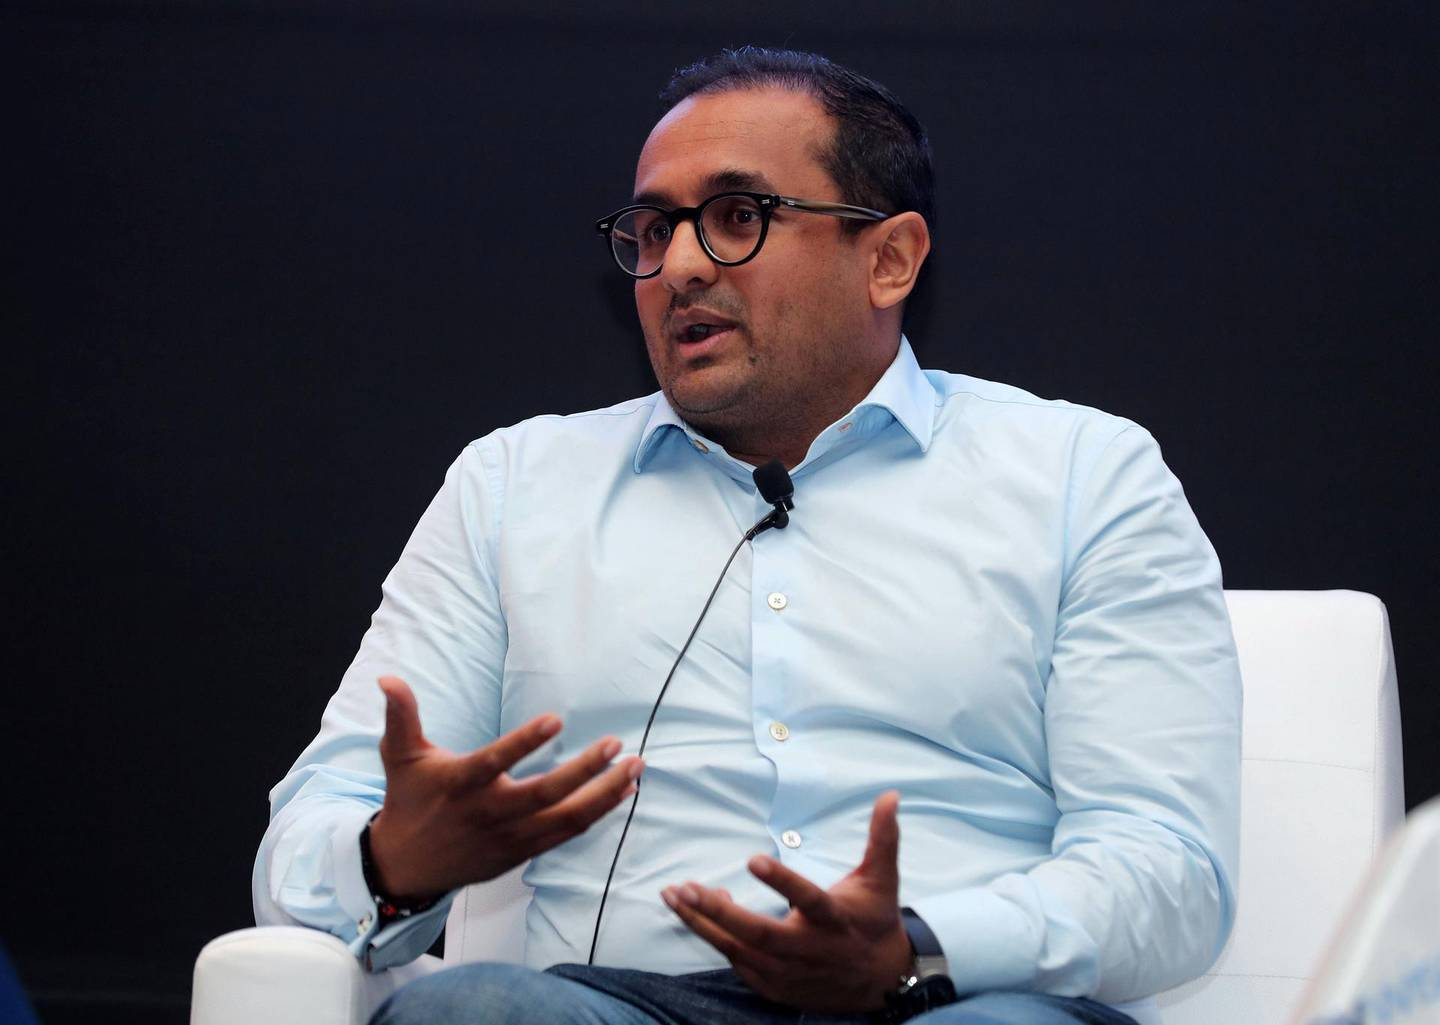 Dubai, United Arab Emirates - June 26th, 2018: Jayash Patel, Head of Liv speaks at Manage Your Money, Build Your Future event. Tuesday, June 26th, 2018 in Emirates Towers, Dubai. Chris Whiteoak / The National